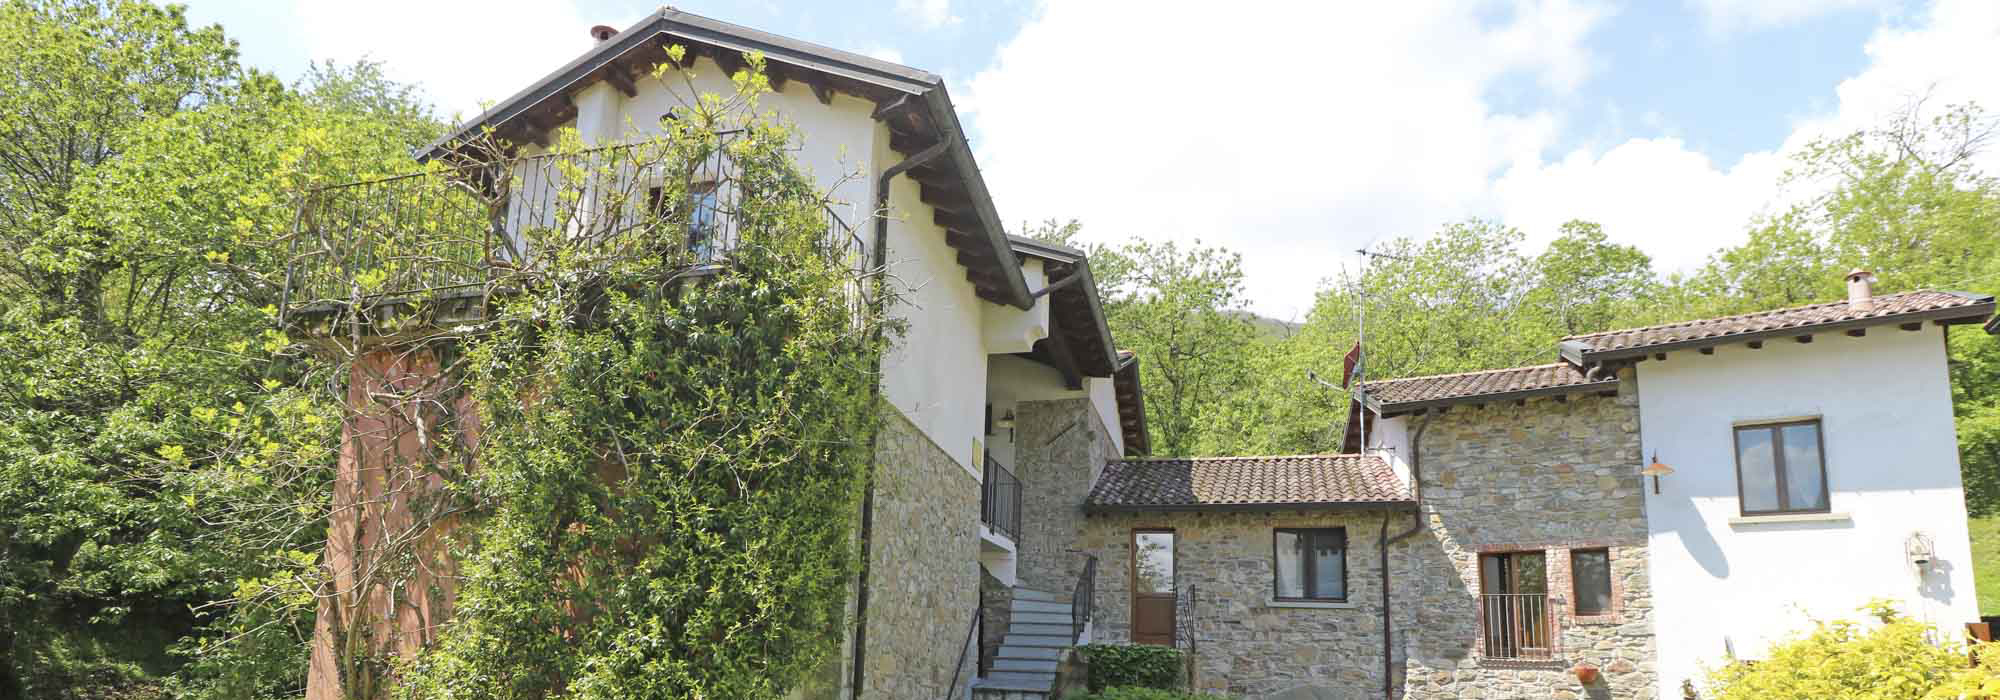 LA GORA – Splendido Casale Restaurato B&B con Terreno